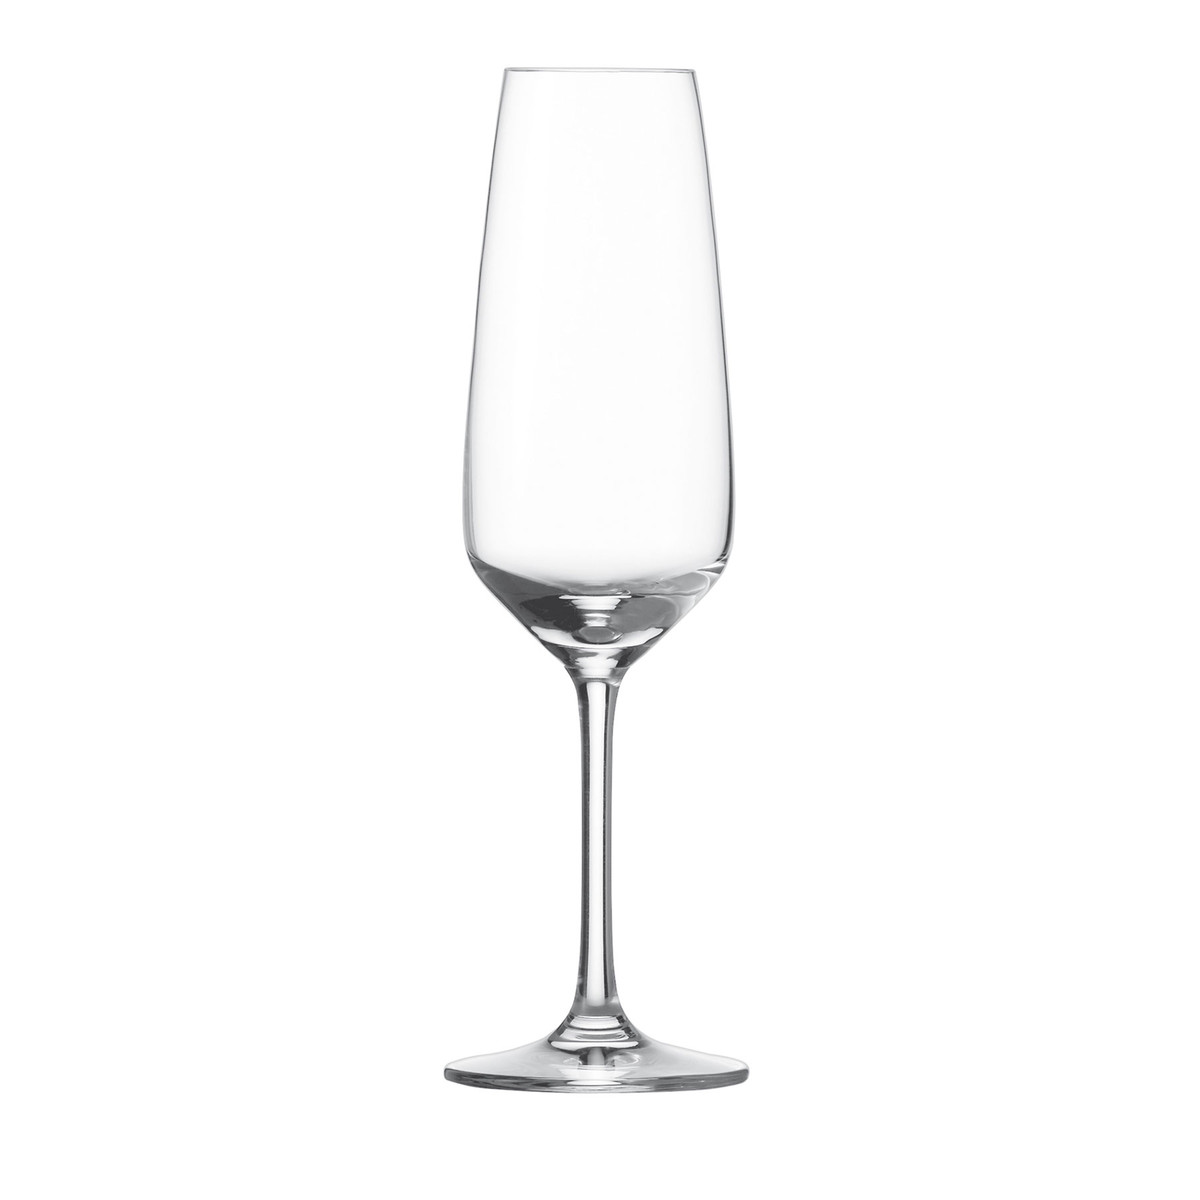 Wholesale Tableware | Schott Zwiesel Wine Glasses | Schott Zwiesel Crystal Wine Glasses